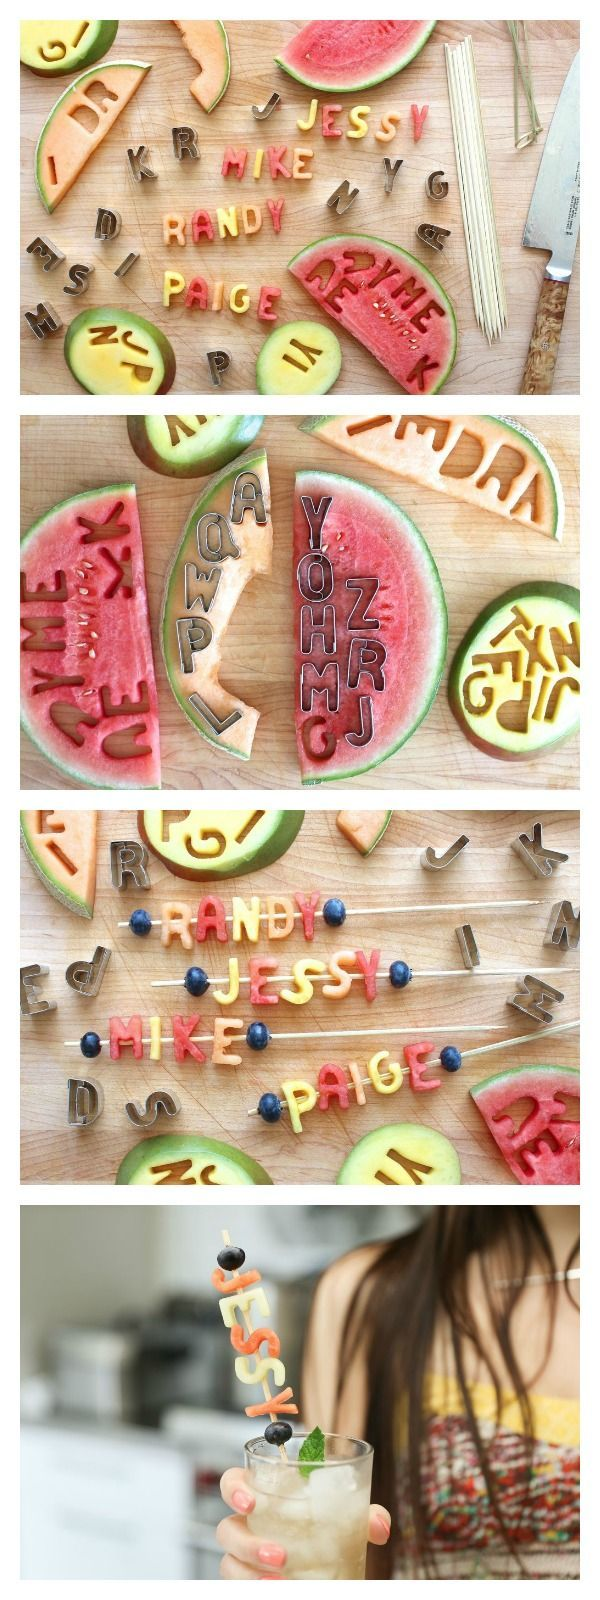 Get creative with your cookie cutter creations, use letters to spell your guests' names out of melon or watermelon to use as drink markers and place holders.